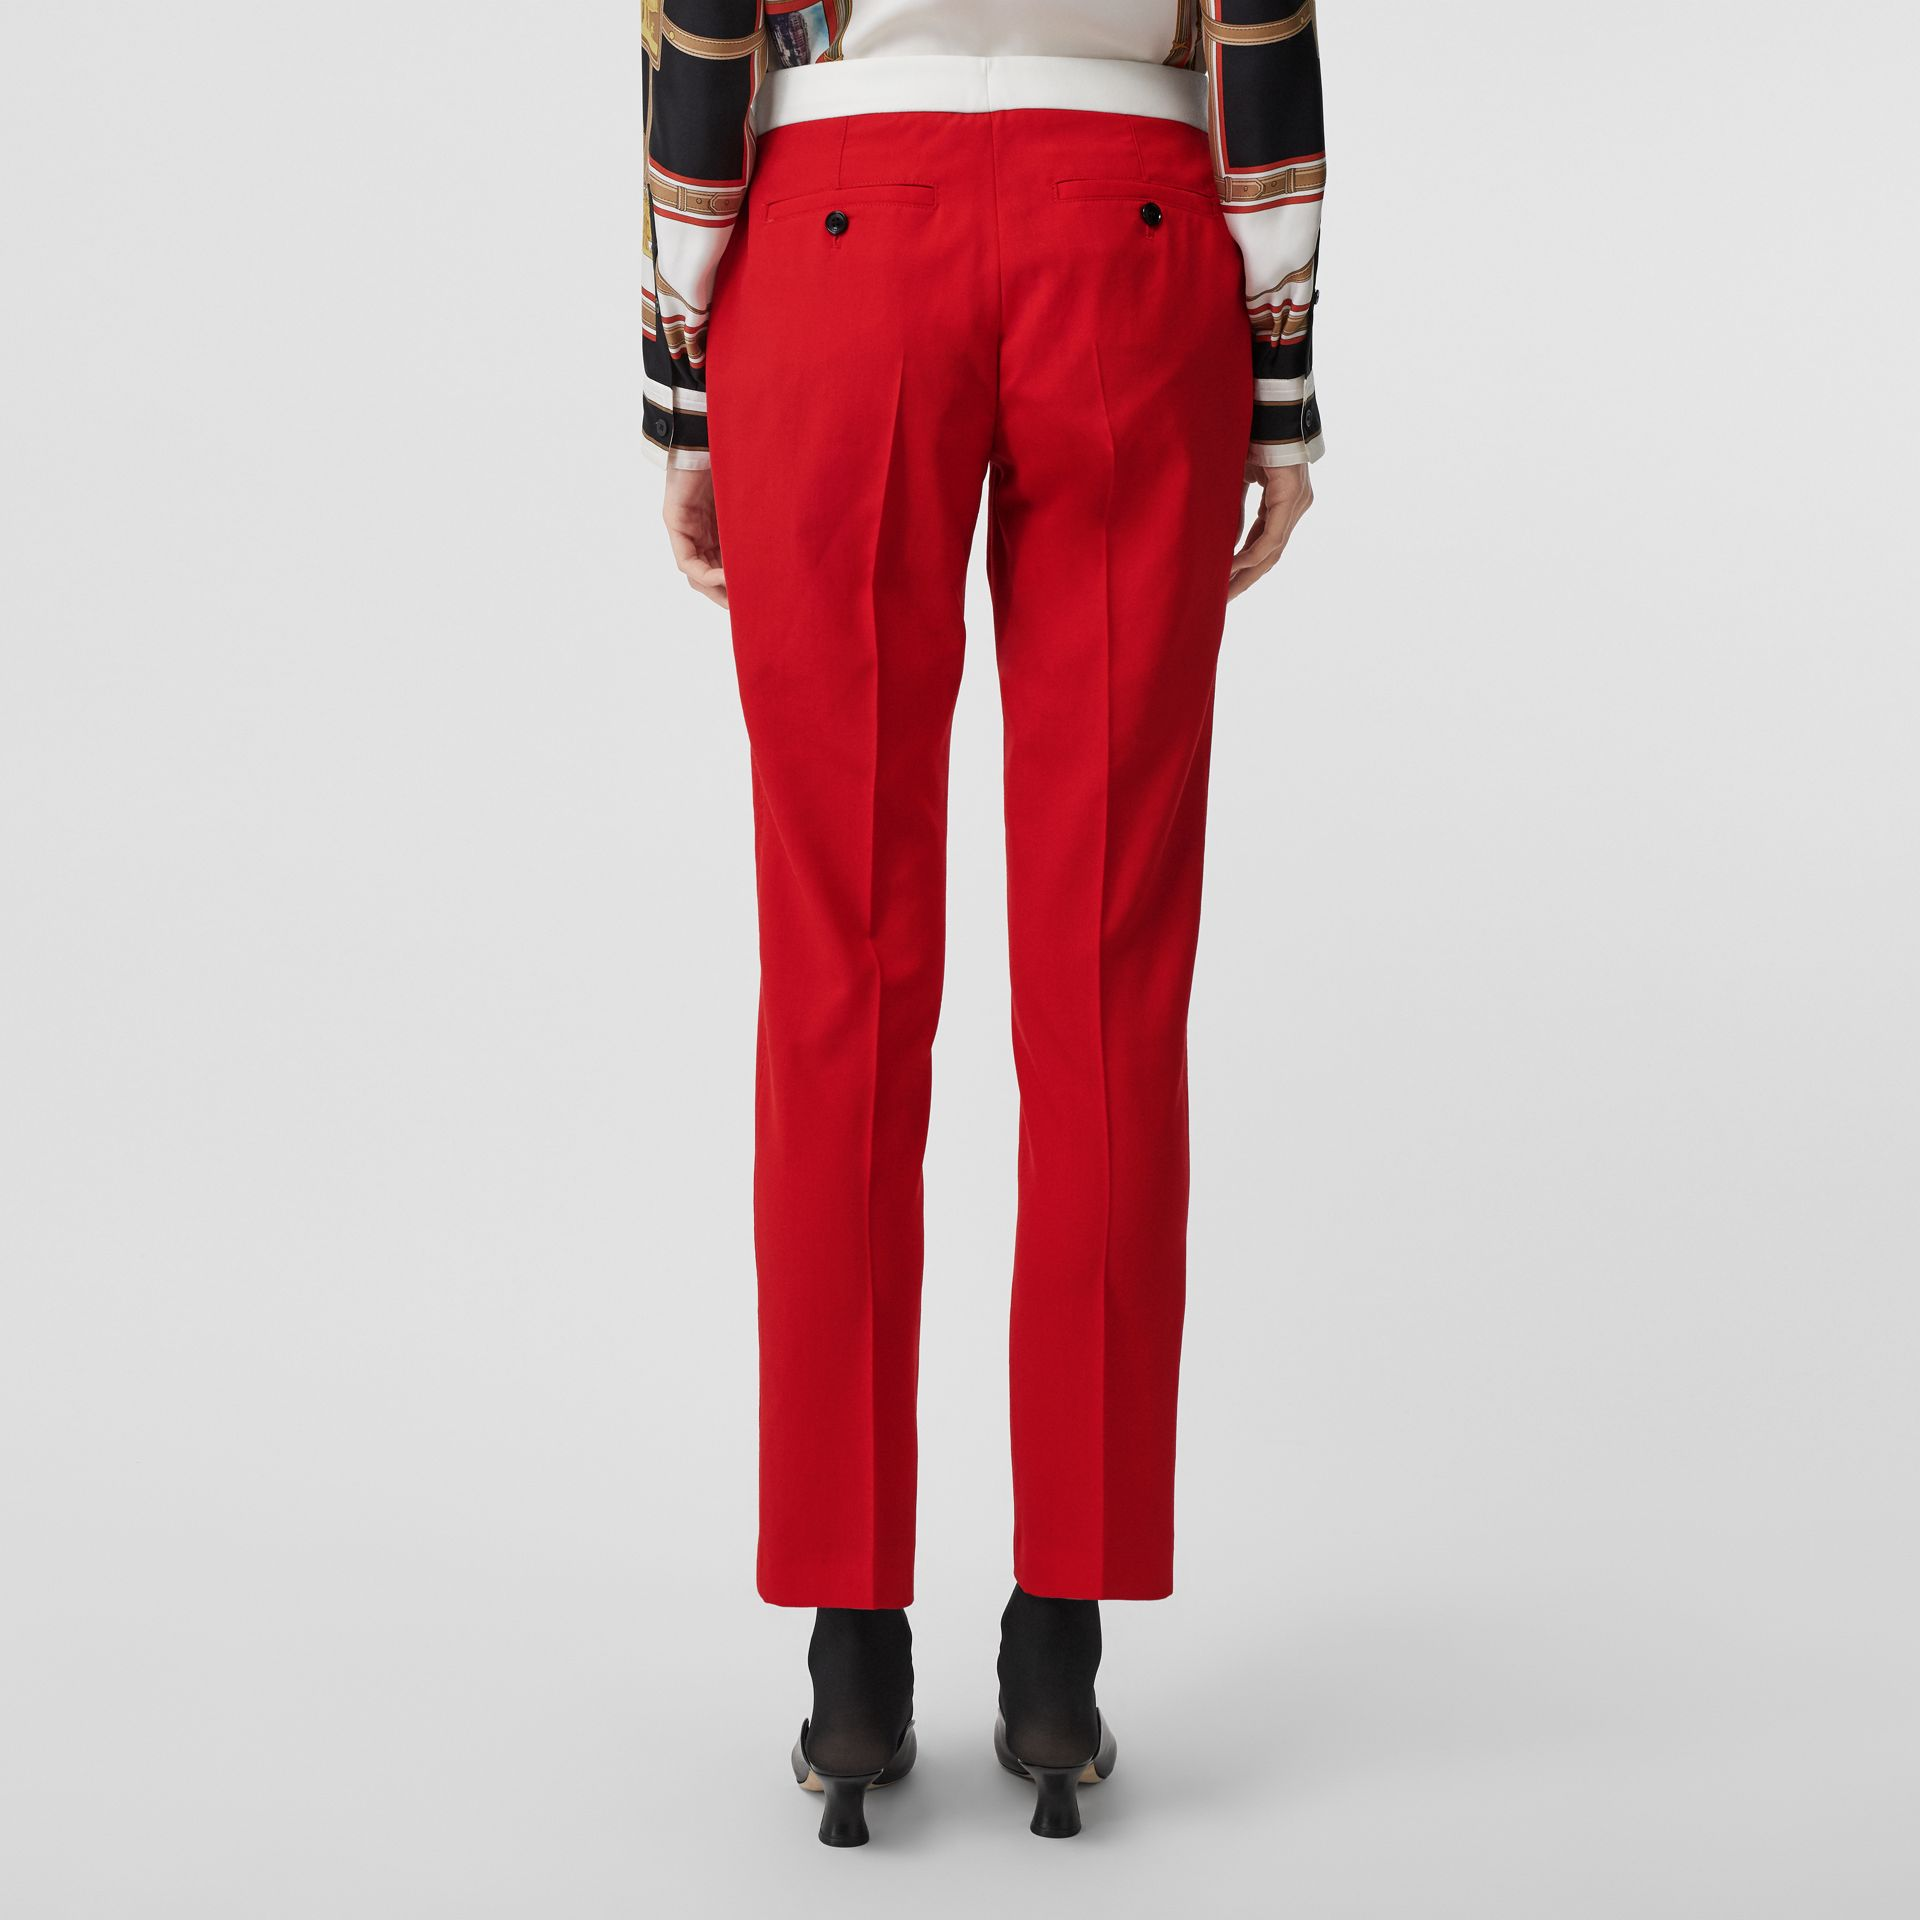 Two-tone Wool Tailored Trousers in Bright Red - Women | Burberry - gallery image 2